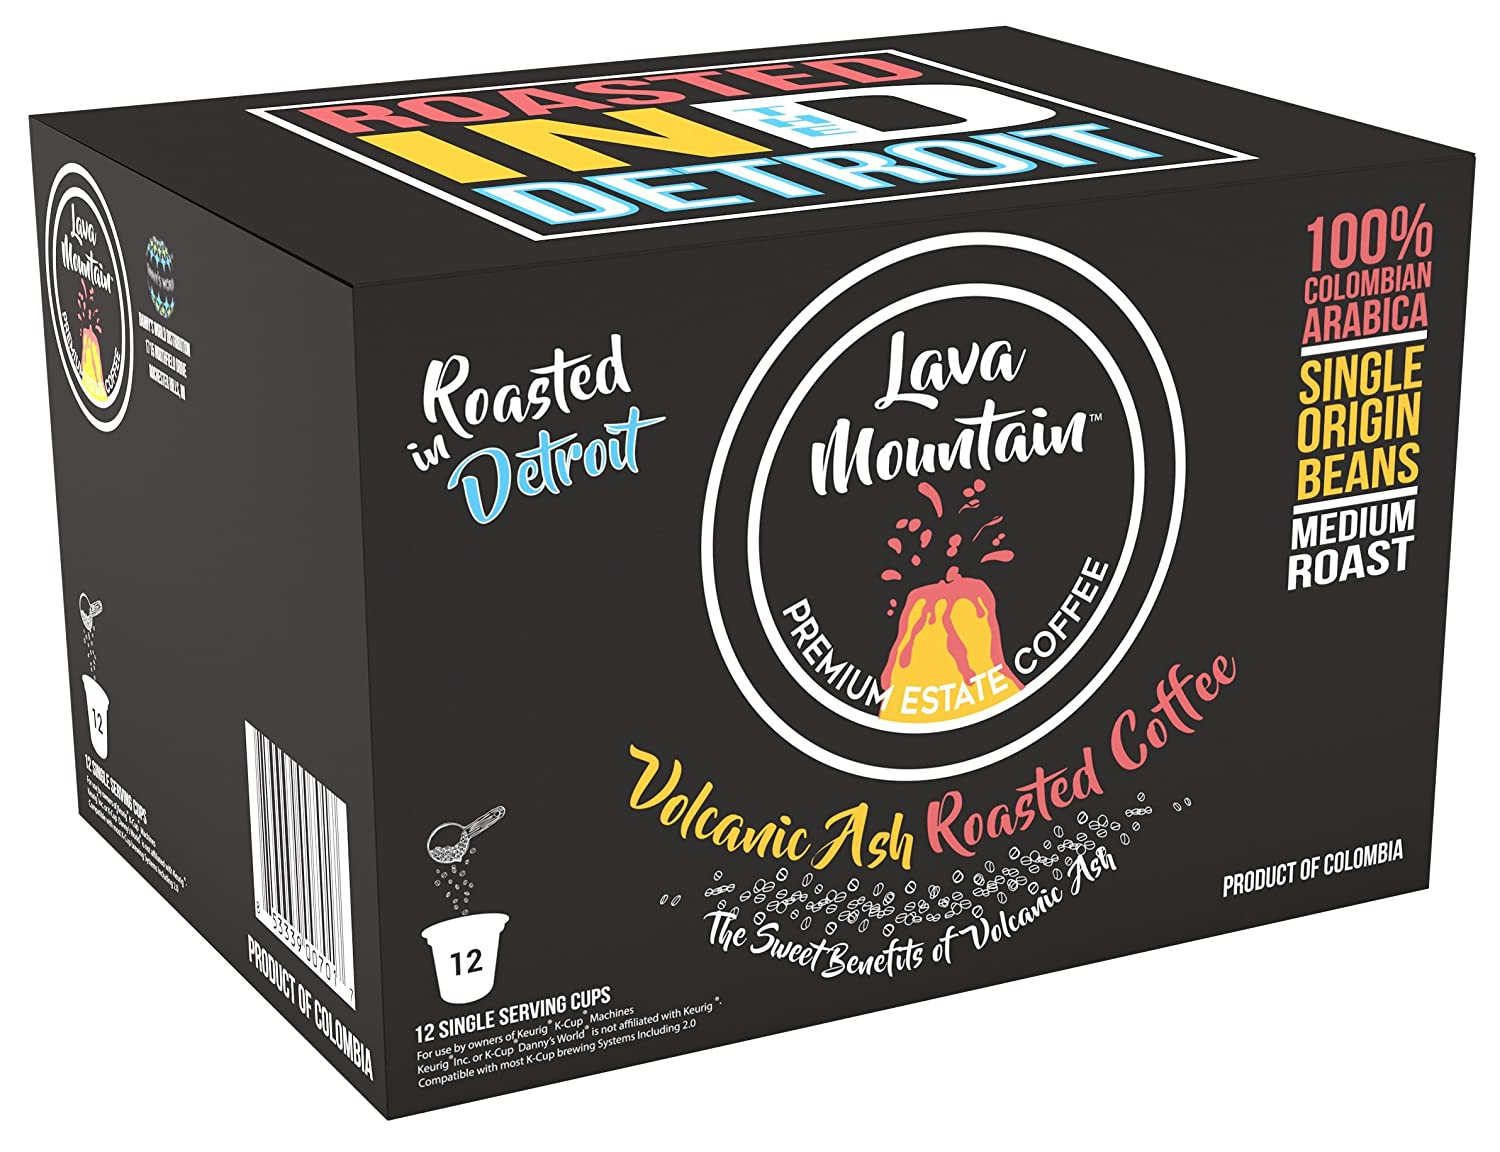 Lava Mountain Single Origin Colombia Single Serve K-Cups, Medium Roast (12pk) Image